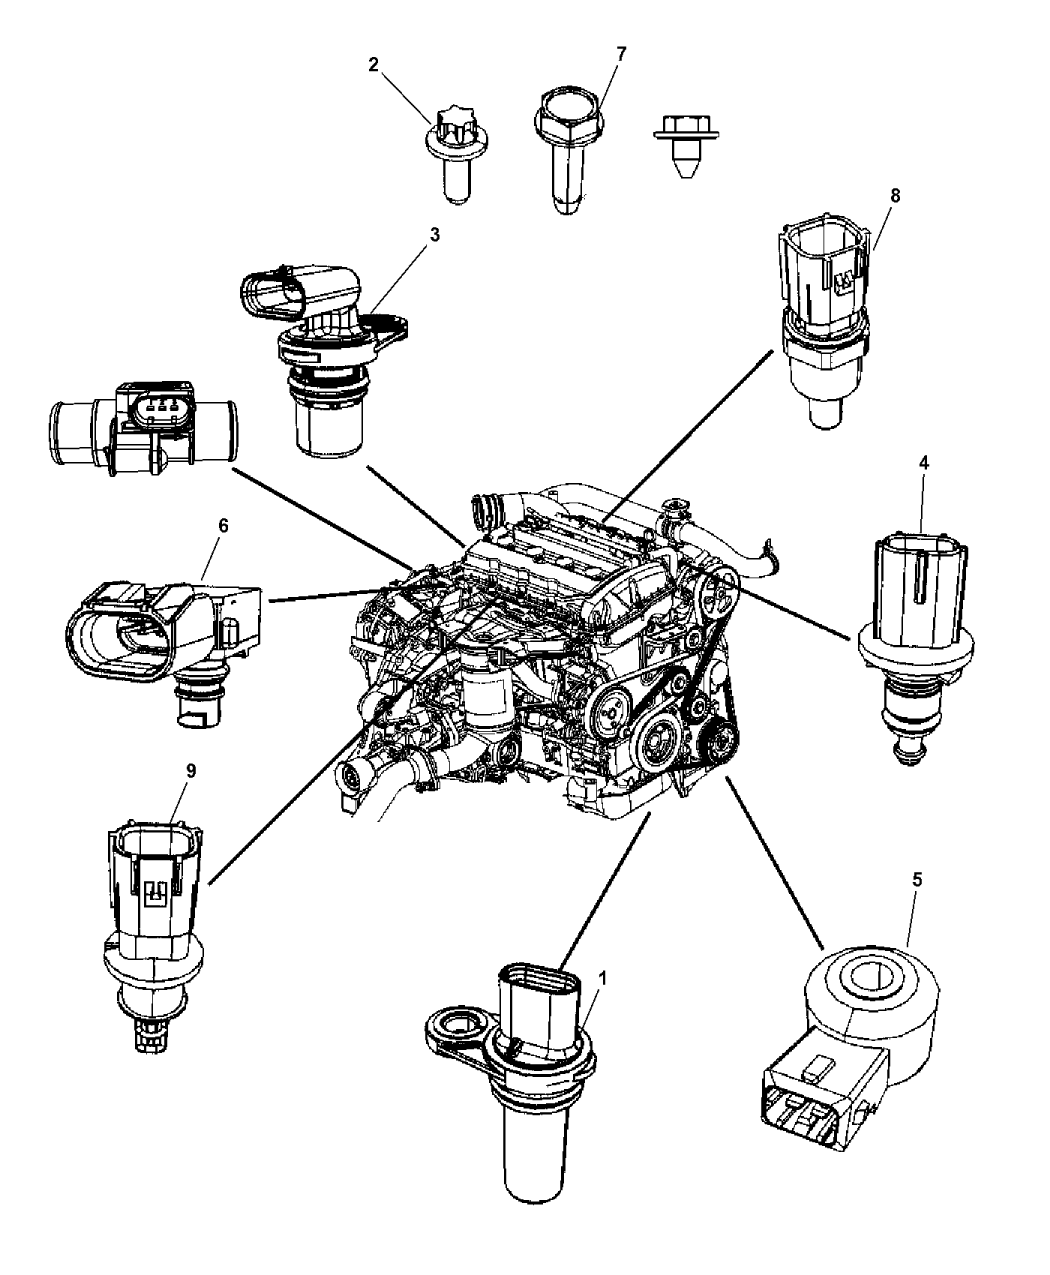 5033307ad genuine mopar sensor crankshaft position rh moparpartsgiant com 2007 Jeep Compass Serpentine Belt Diagram 2014 jeep compass engine diagram